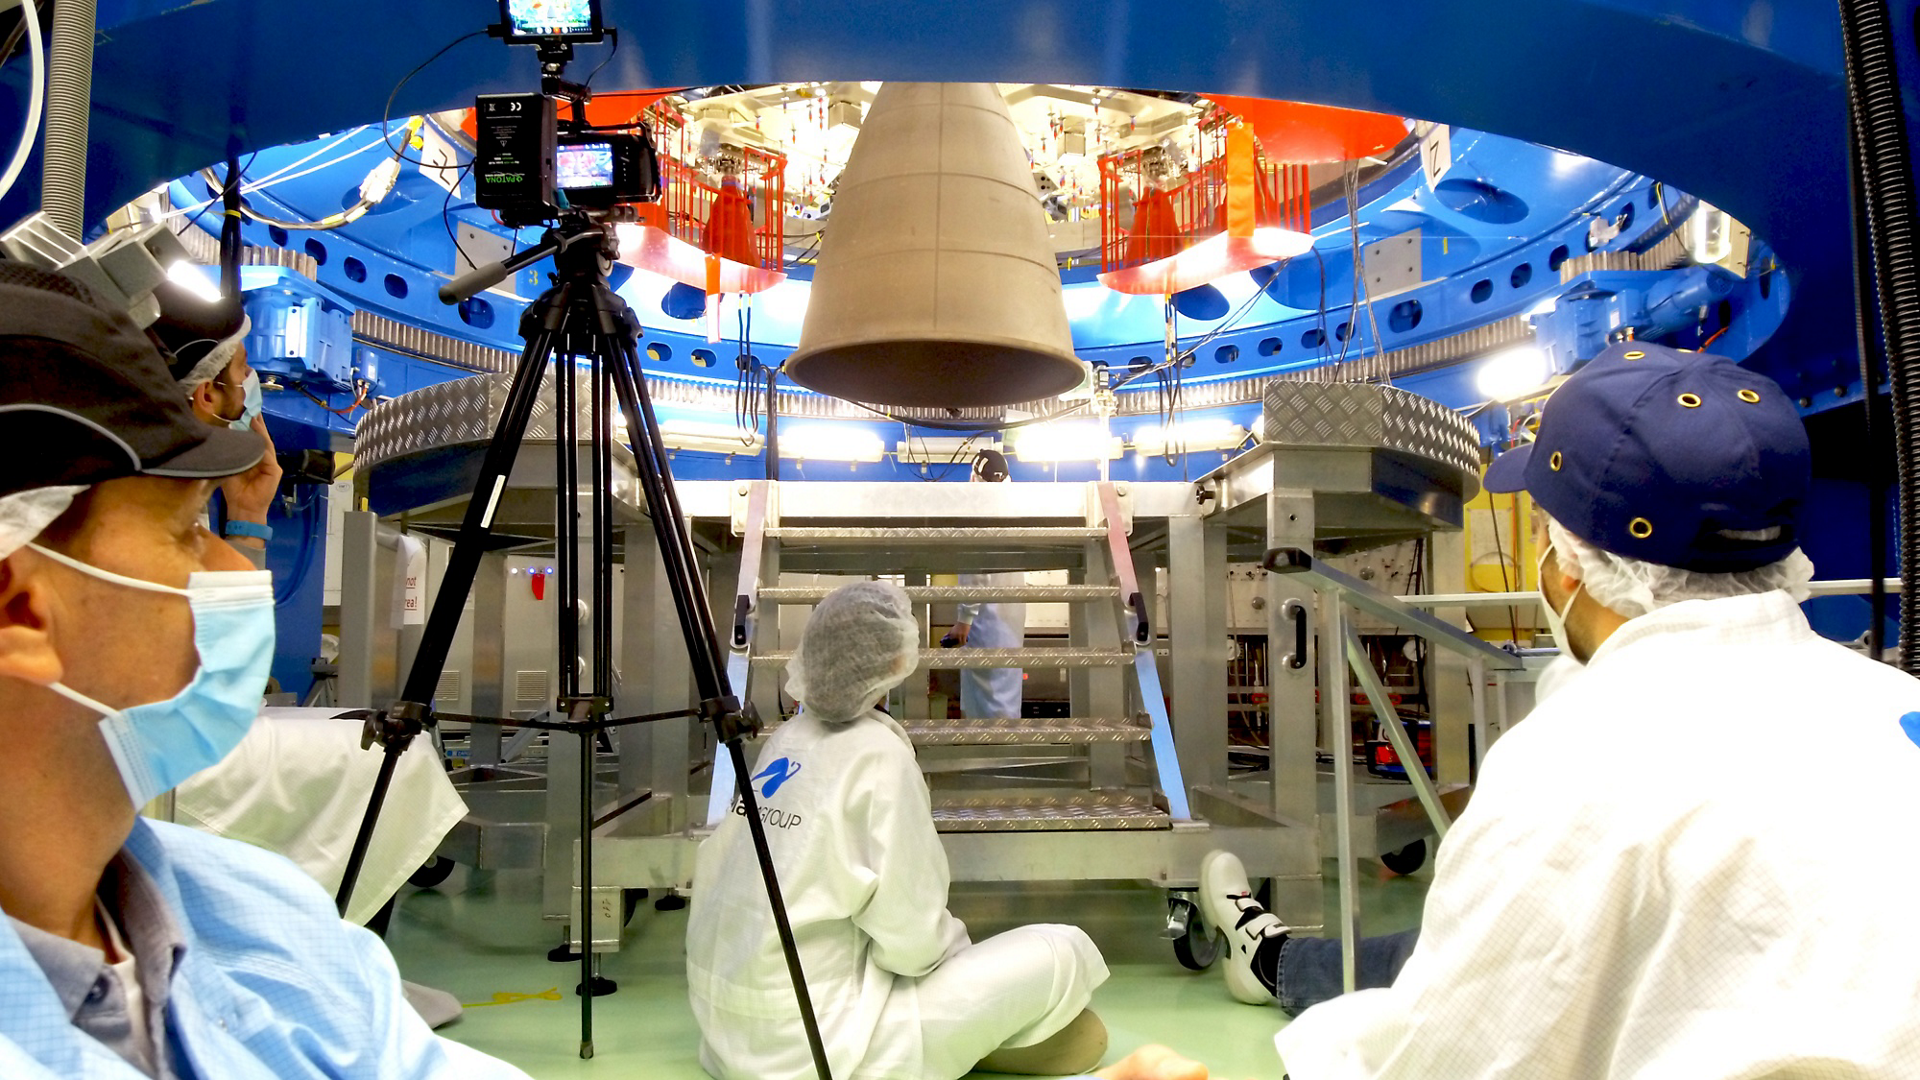 A view from the bottom of the ESM-2 European Service Module flight model.